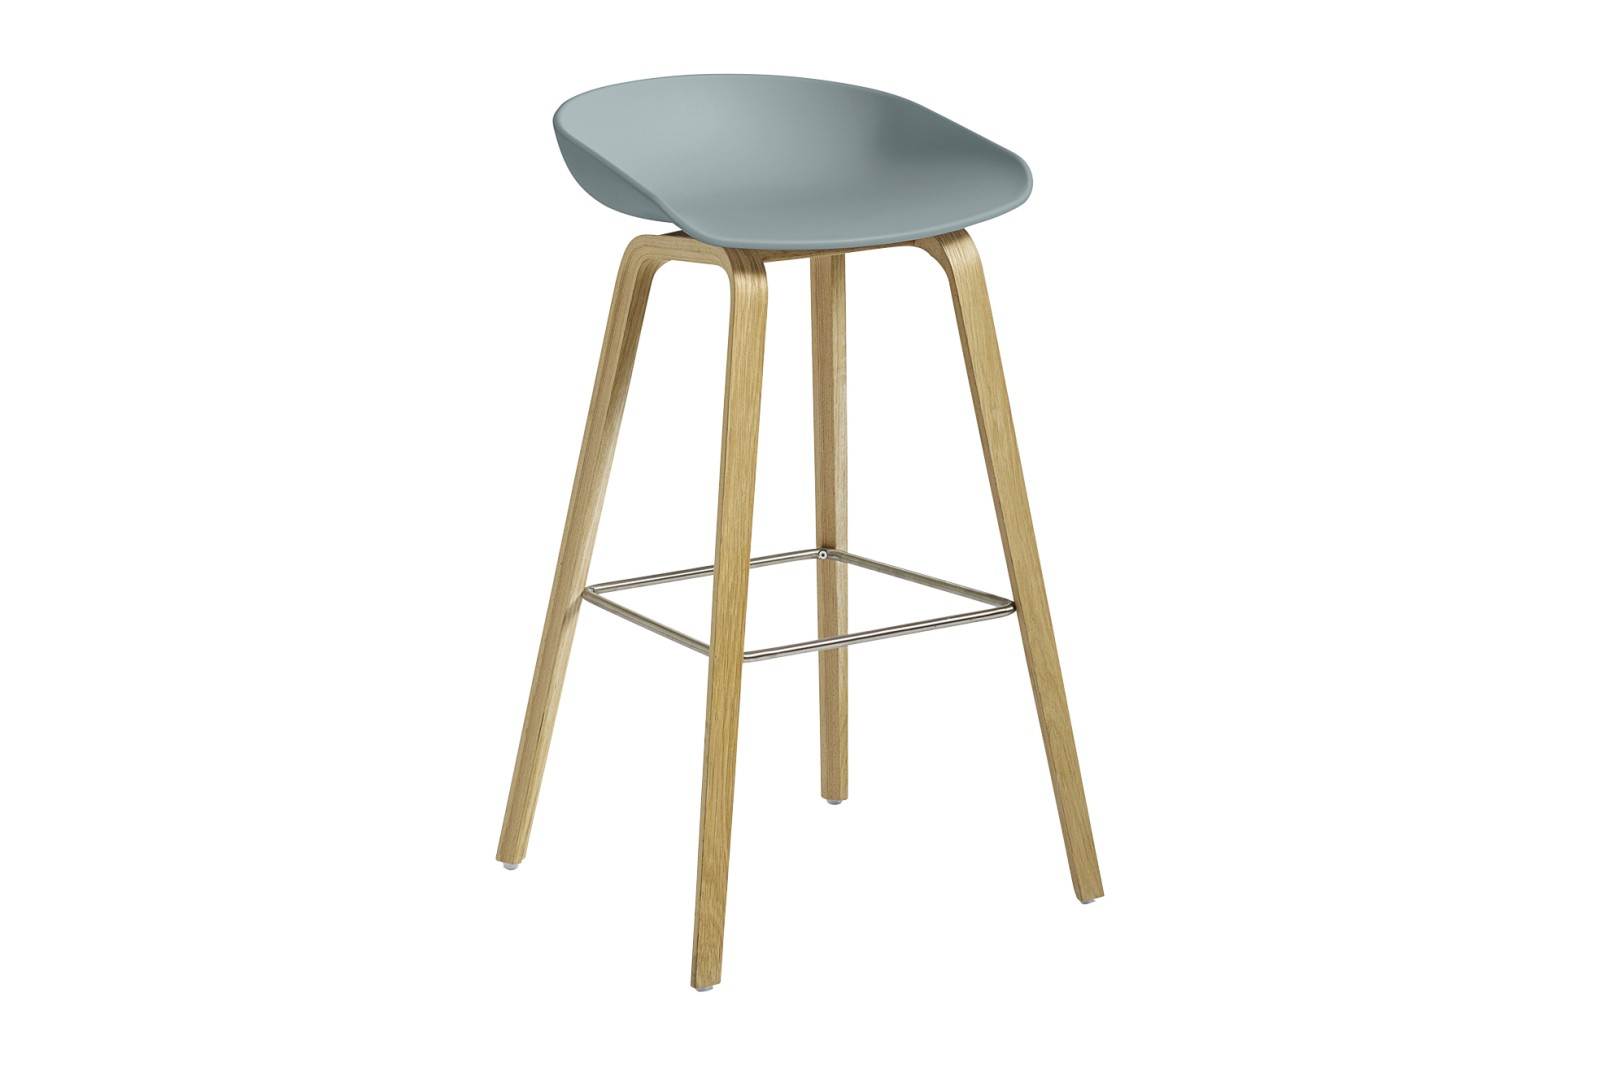 About A Stool AAS32 Clear Lacquered Oak Base, Dusty Blue Seat, High, Stainless Steel